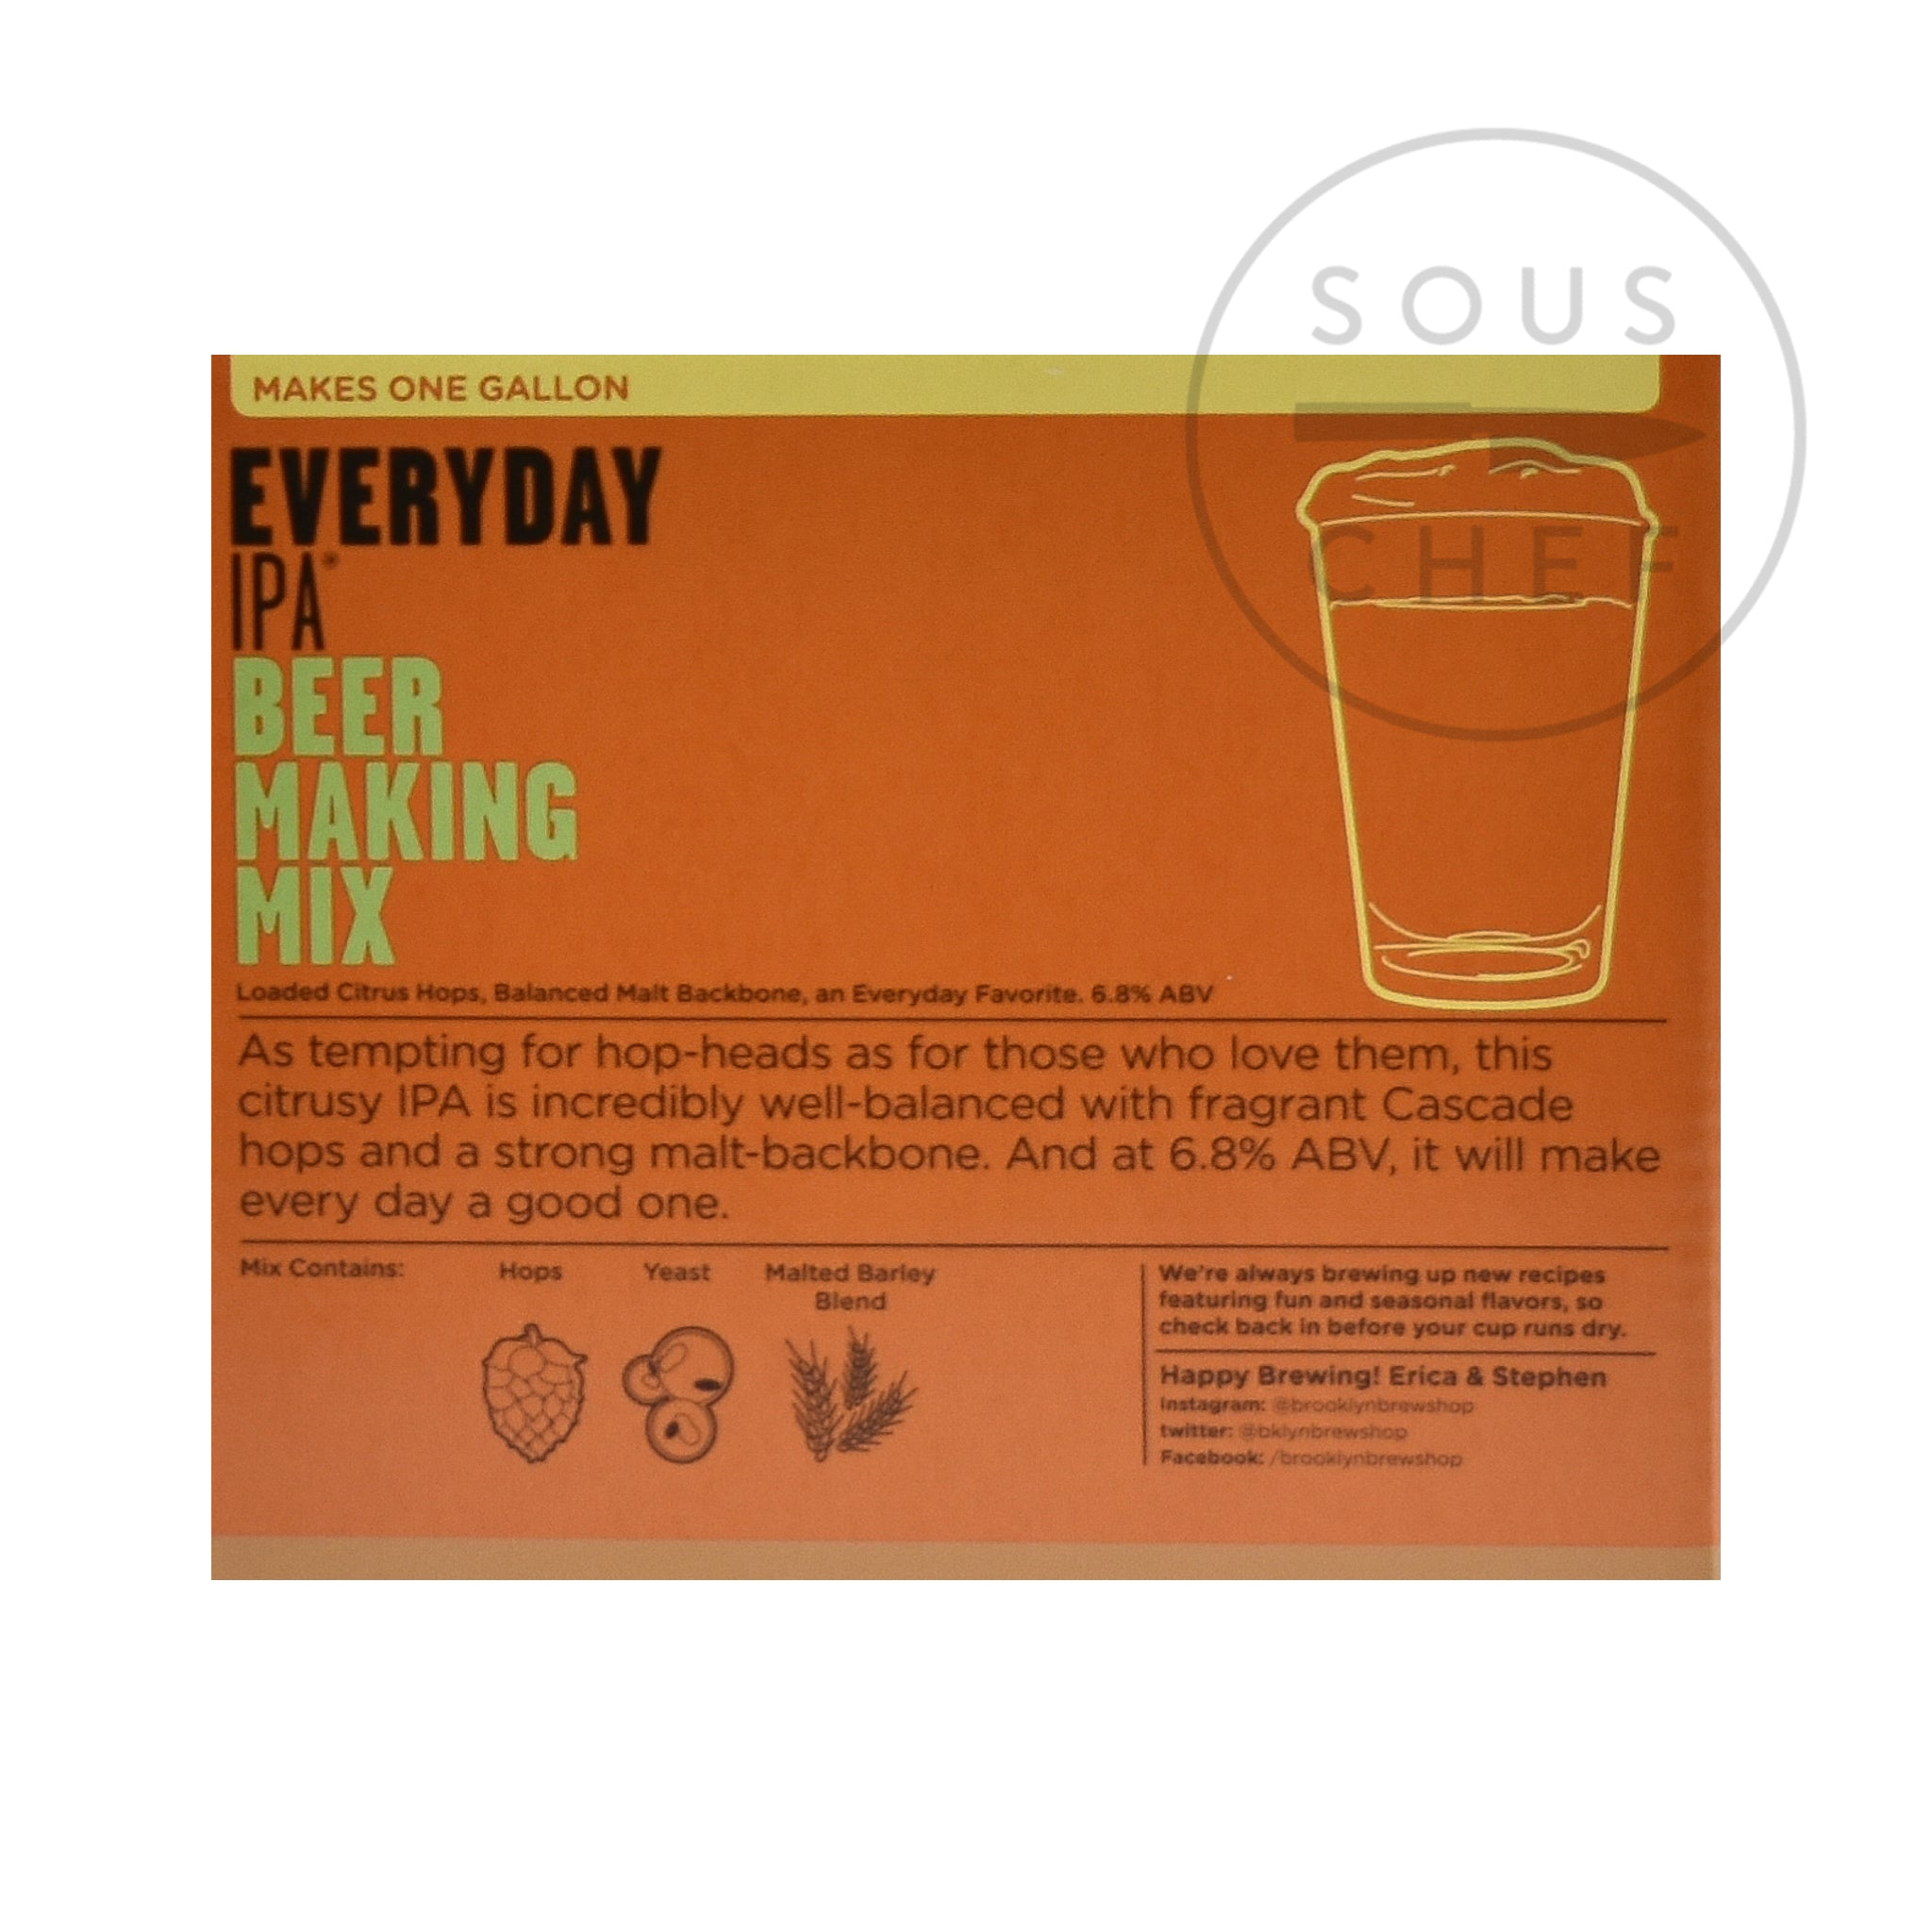 Brooklyn Brew Shop Everyday IPA Mix ingredients